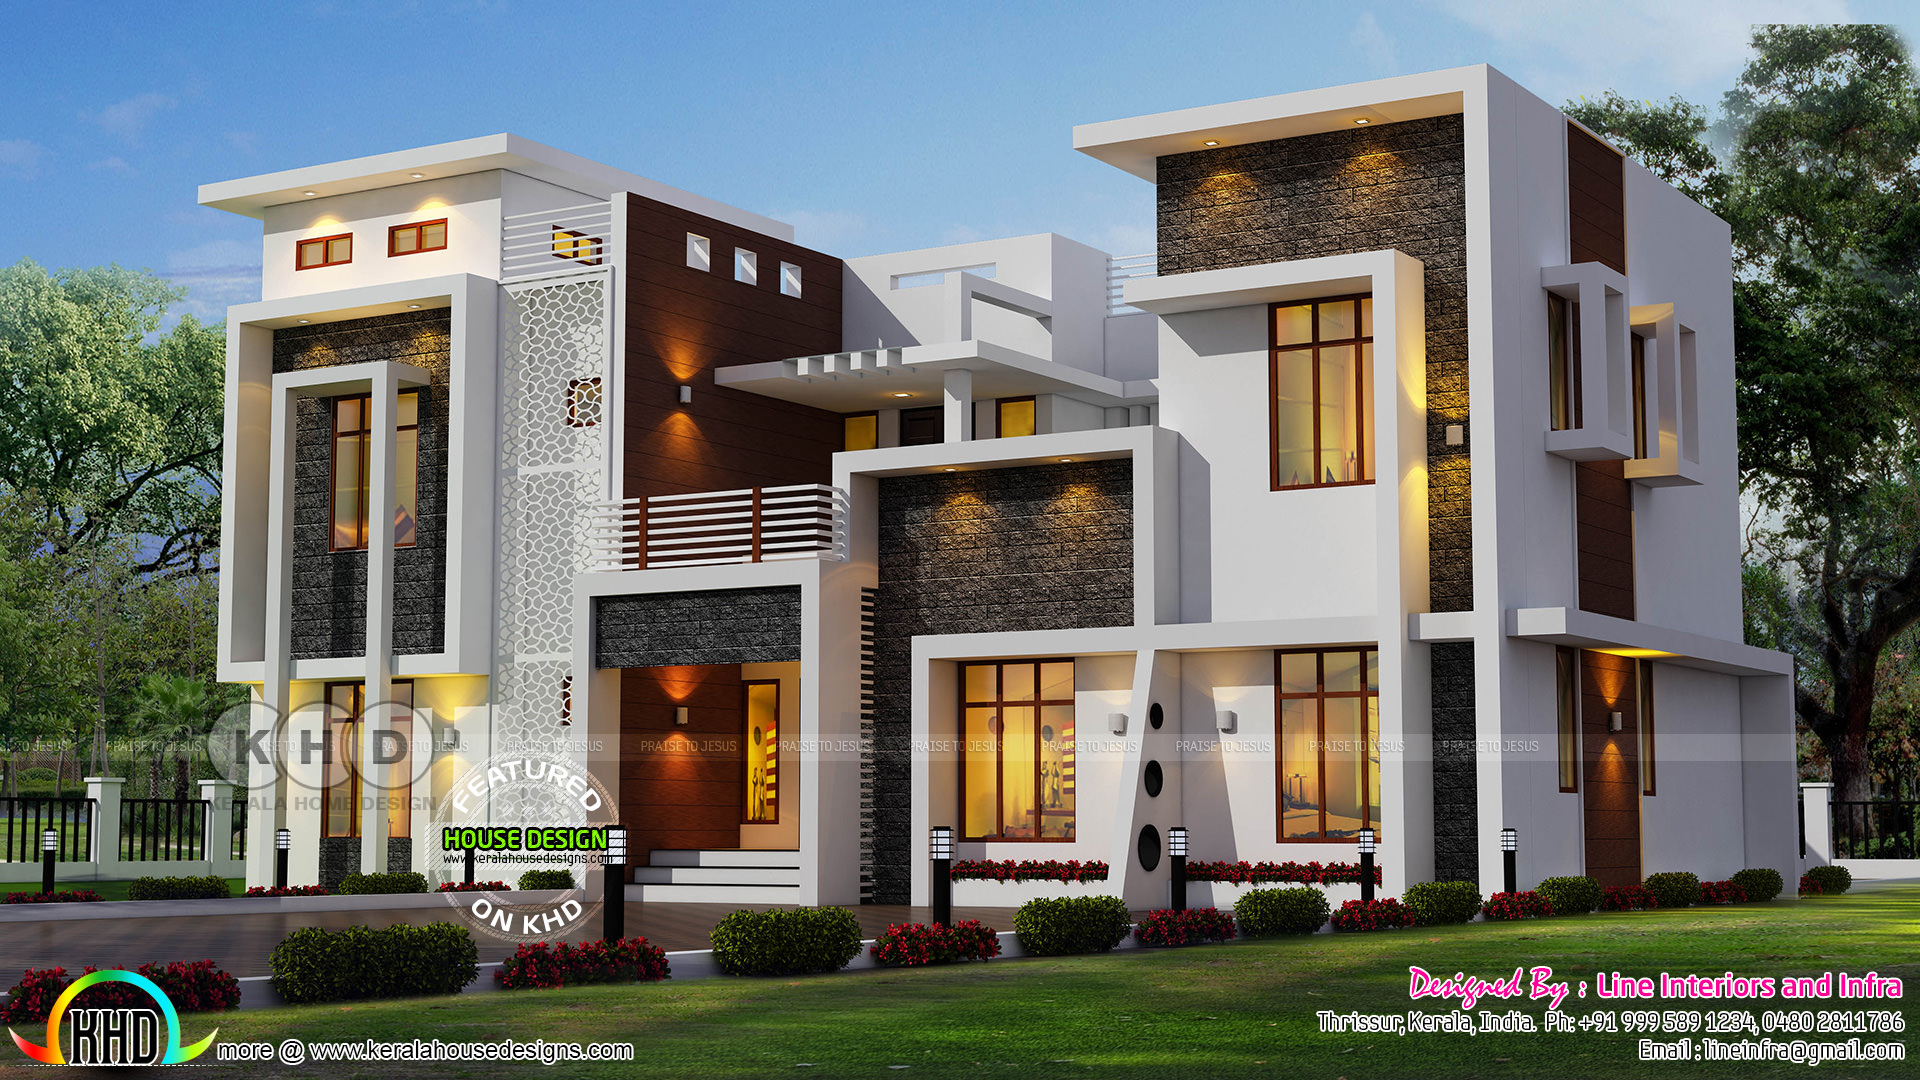 Luxurious modern contemporary Kerala home design | Kerala ...